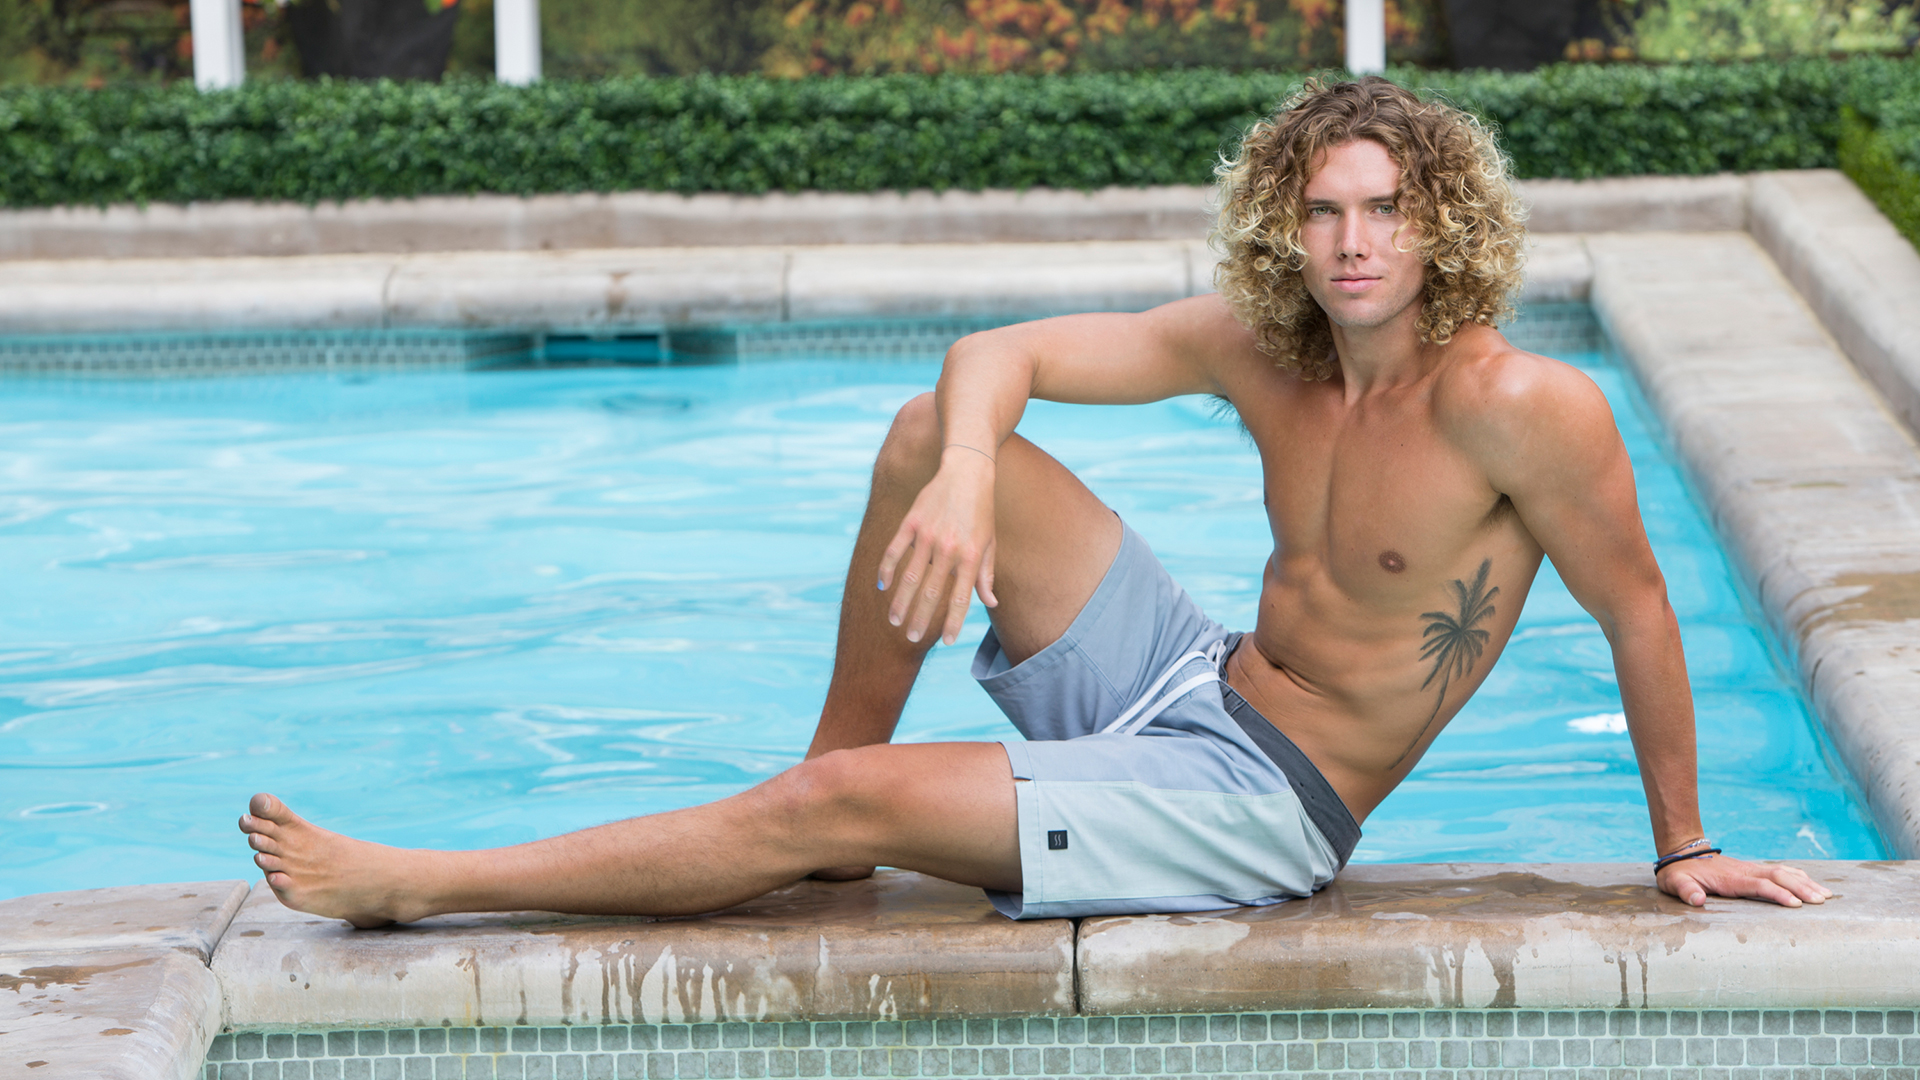 Tyler Crispen relaxes poolside and shows off his summery tattoo.